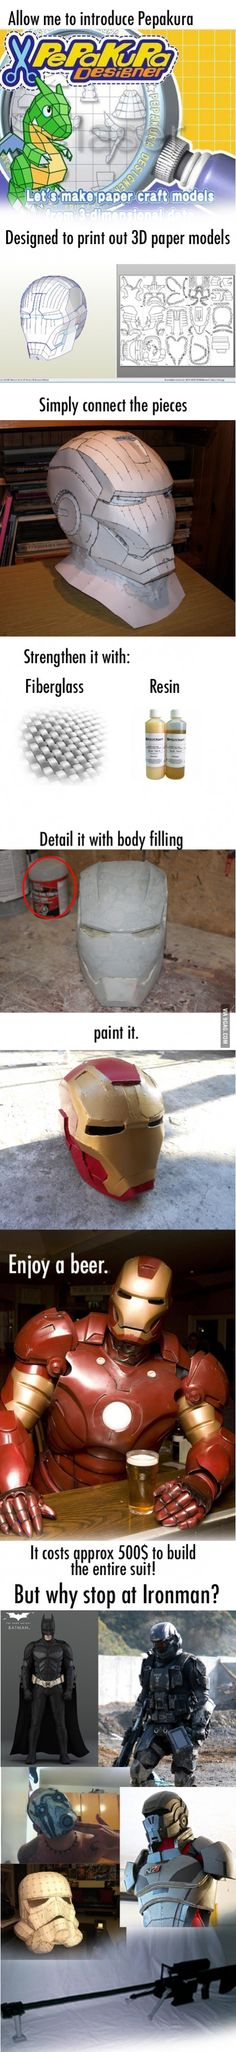 Let's make your own Iron man suit Resources, Tools, and Materials for your Pepakura at www.PepakuraPros.com.